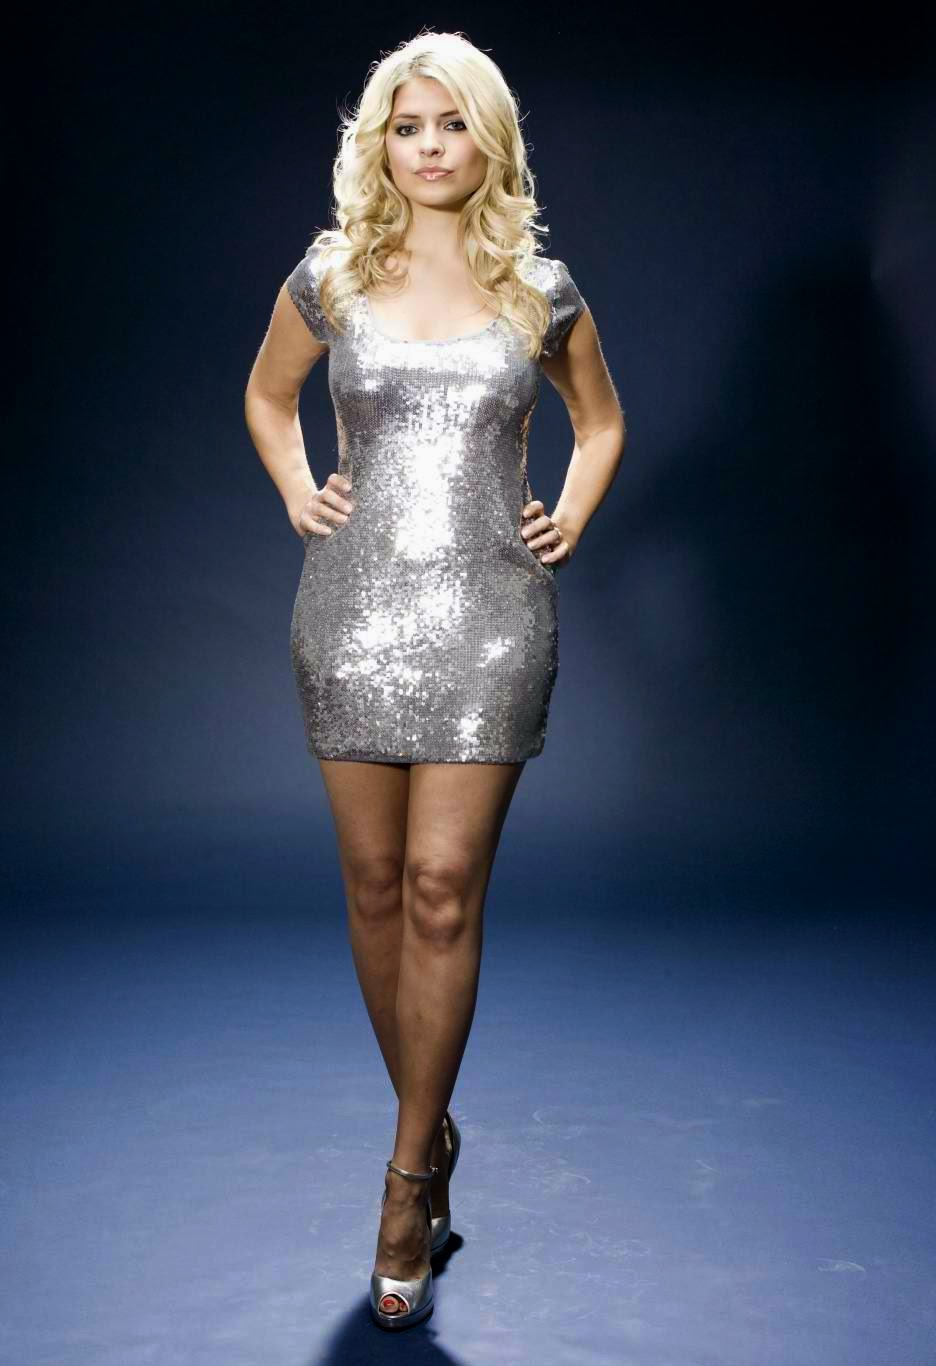 Holly Willoughby Photo 003